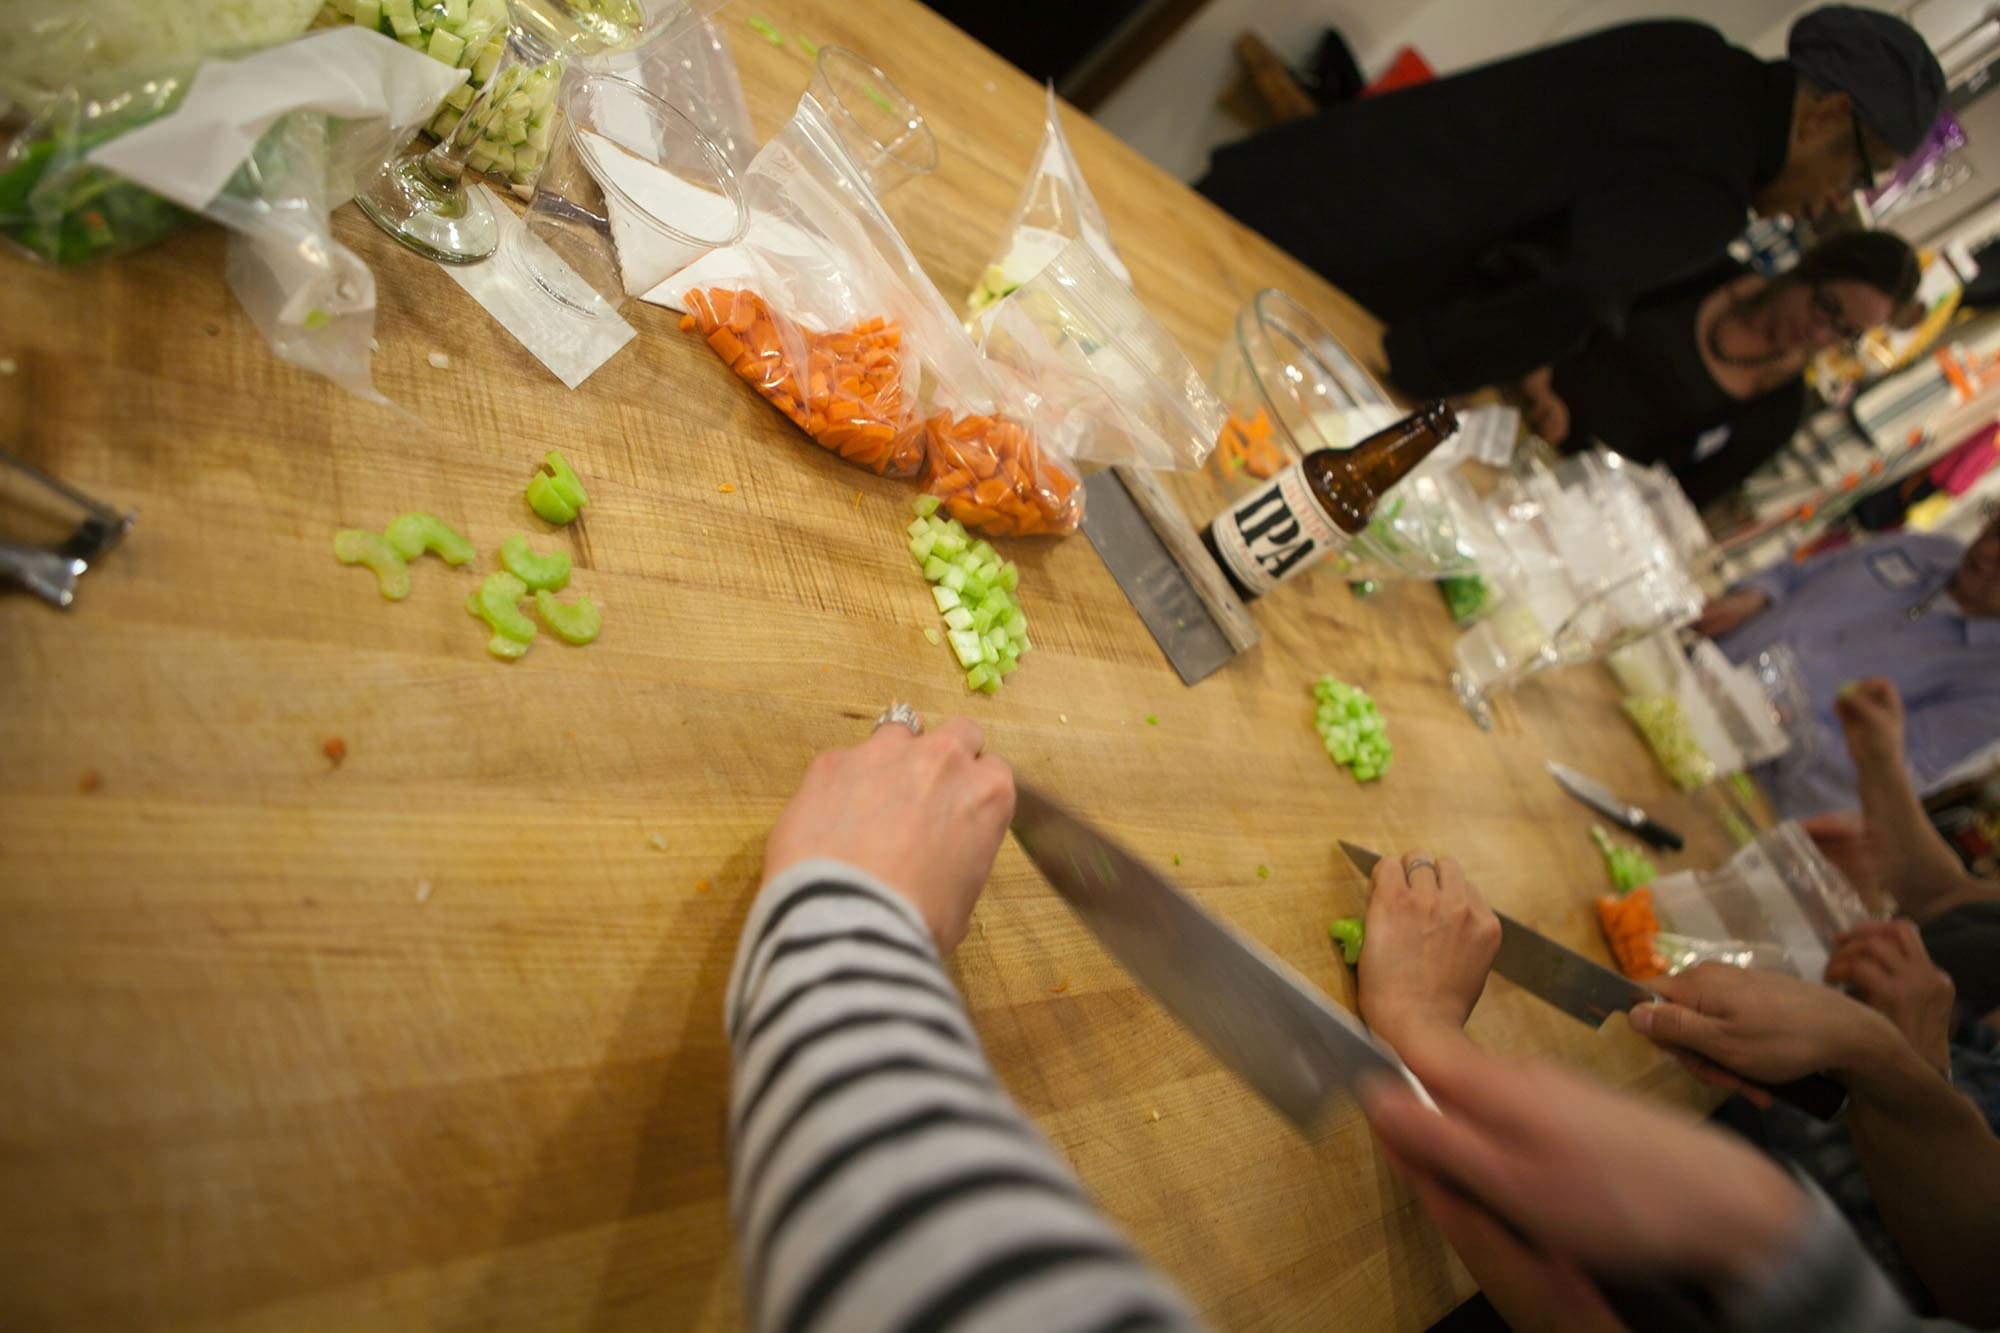 Knife Skills Class at The Chopping Block